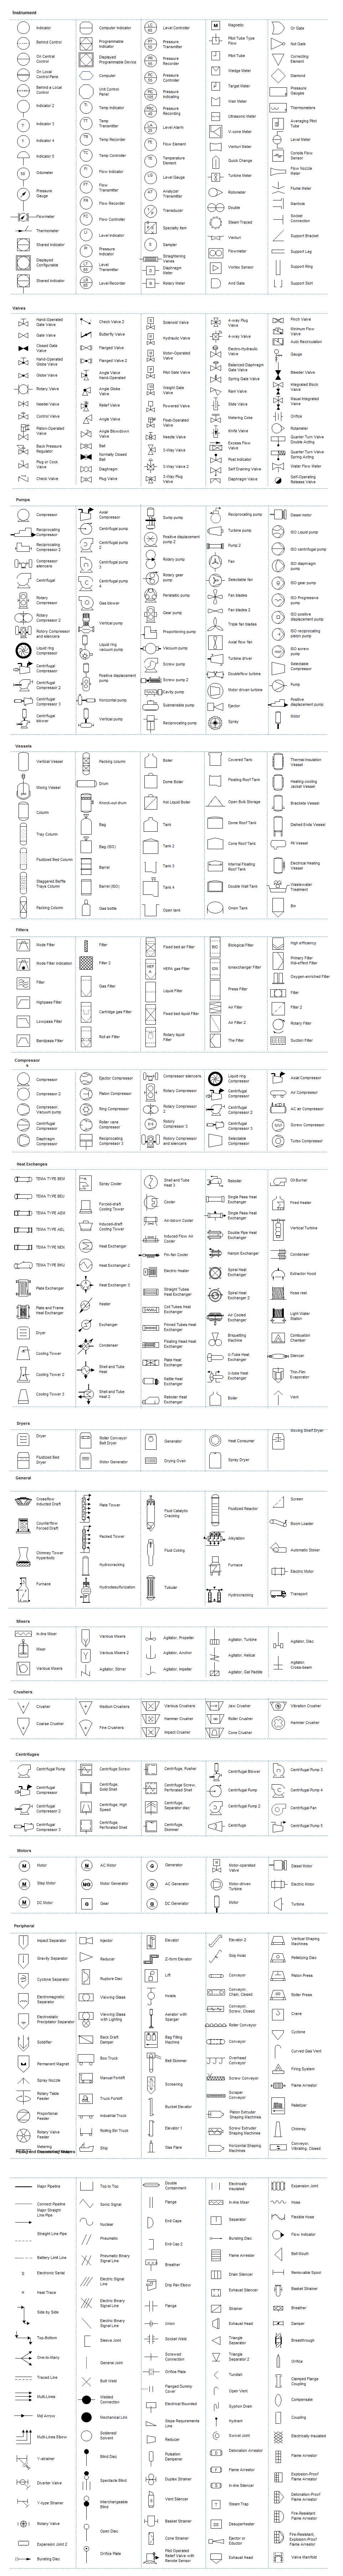 Standard Pid Symbols Legend Electrical Diagram Software Uk